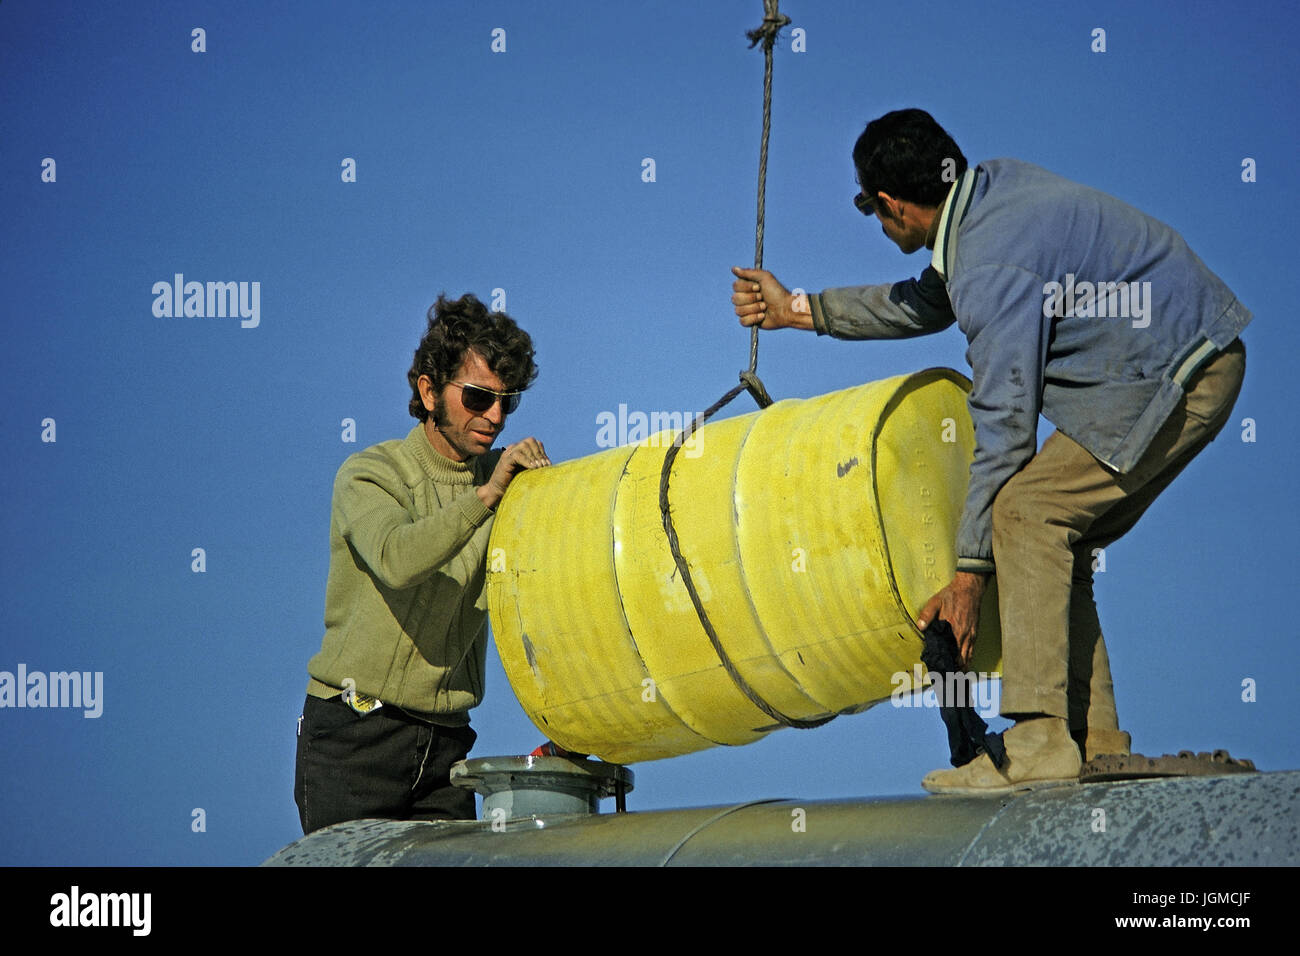 Burning natural gas in Iraq, refinery with Rumaila,, Brennendes Naturgas im Irak, Raffinerie bei Rumaila, Stock Photo